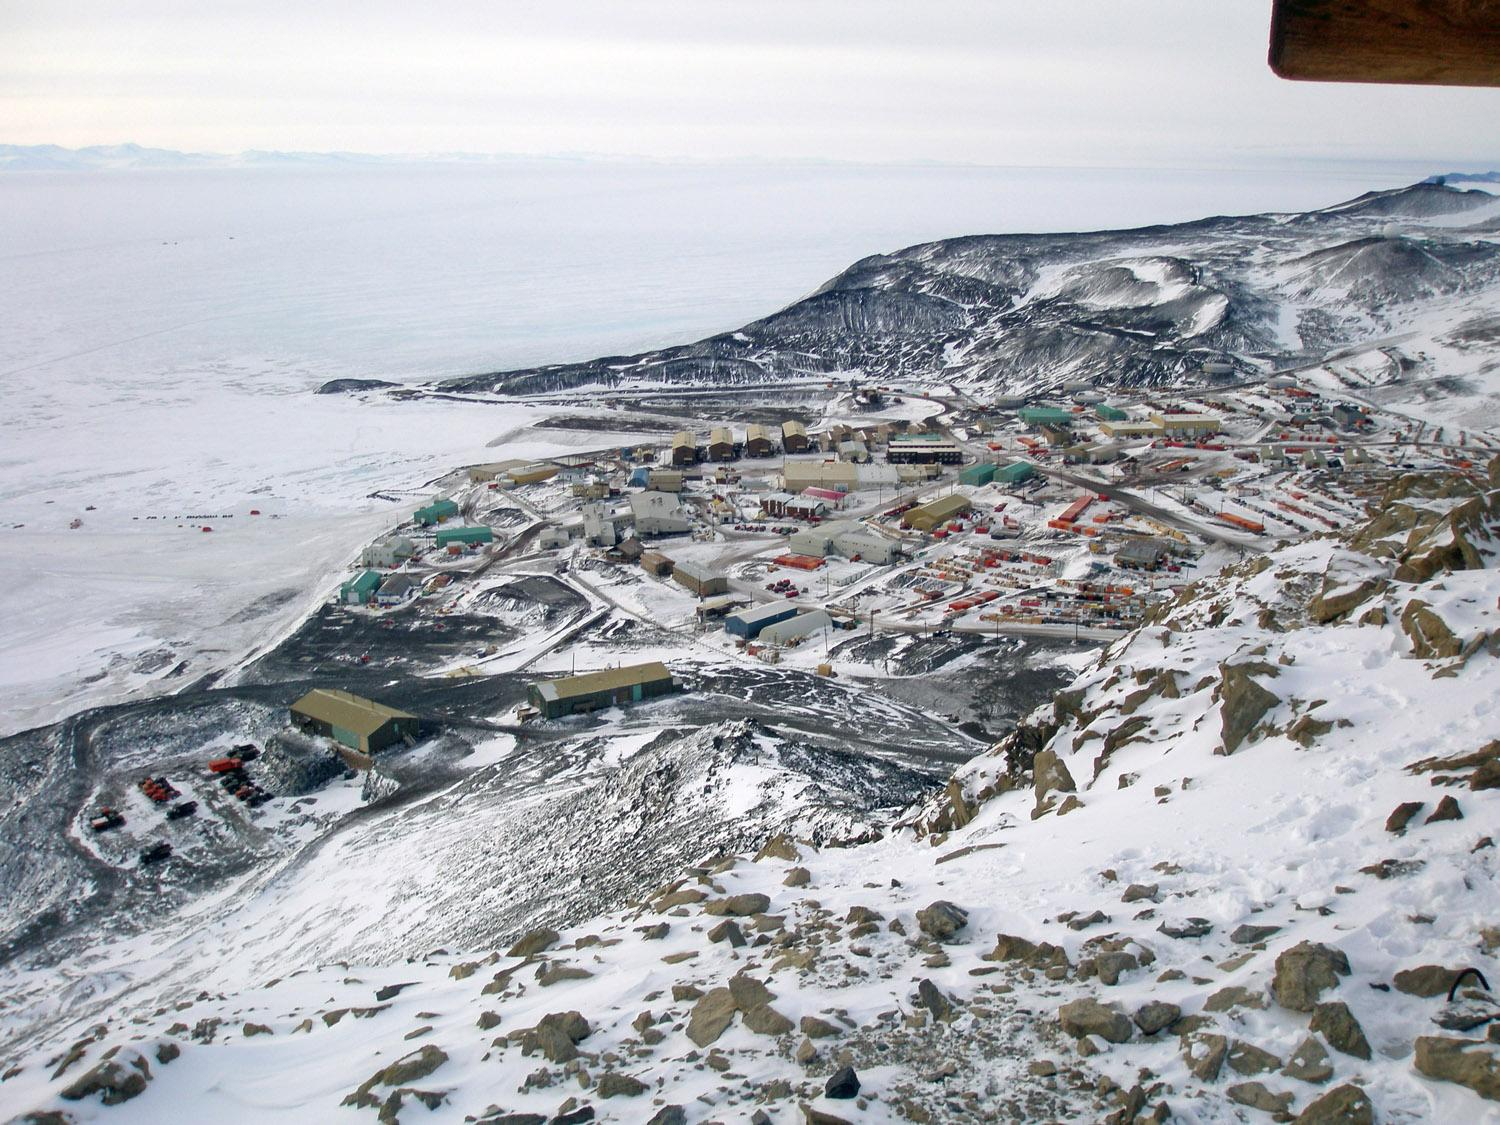 Antarctic Stations - Scientific Research Bases and Facilities